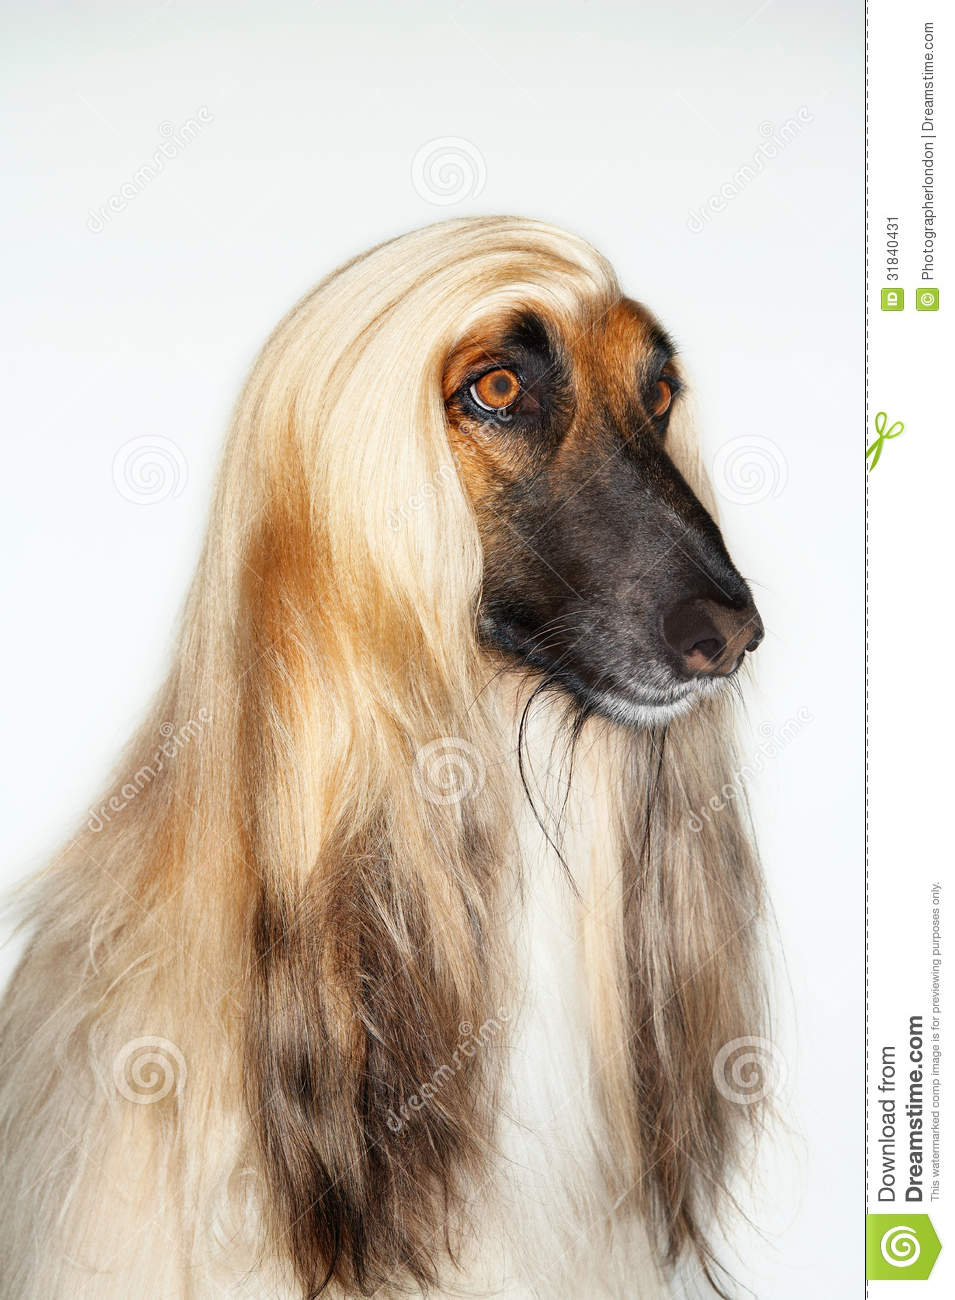 Closeup Of Afghan Hound Stock Image - Image: 31840431